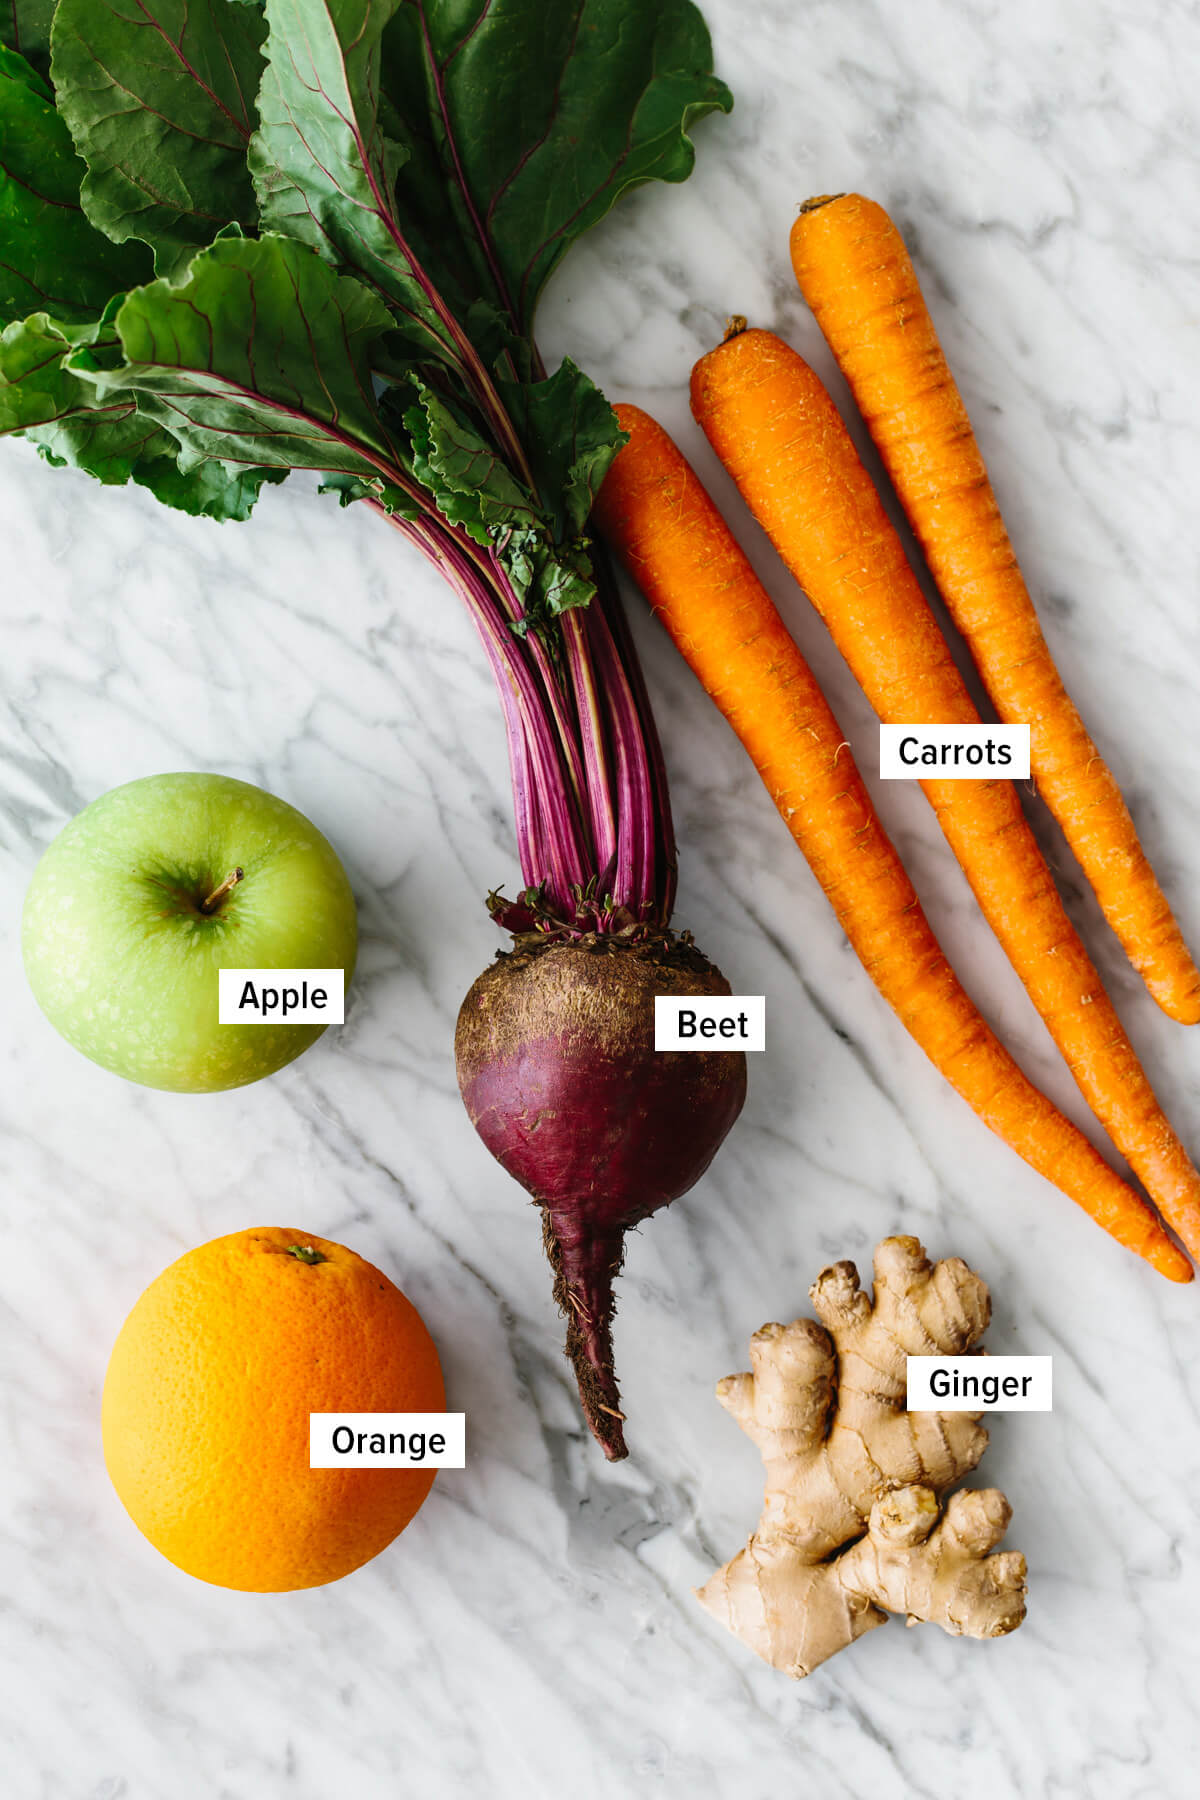 The ingredients to make the apple carrot beet smoothie on a kitchen countertop.